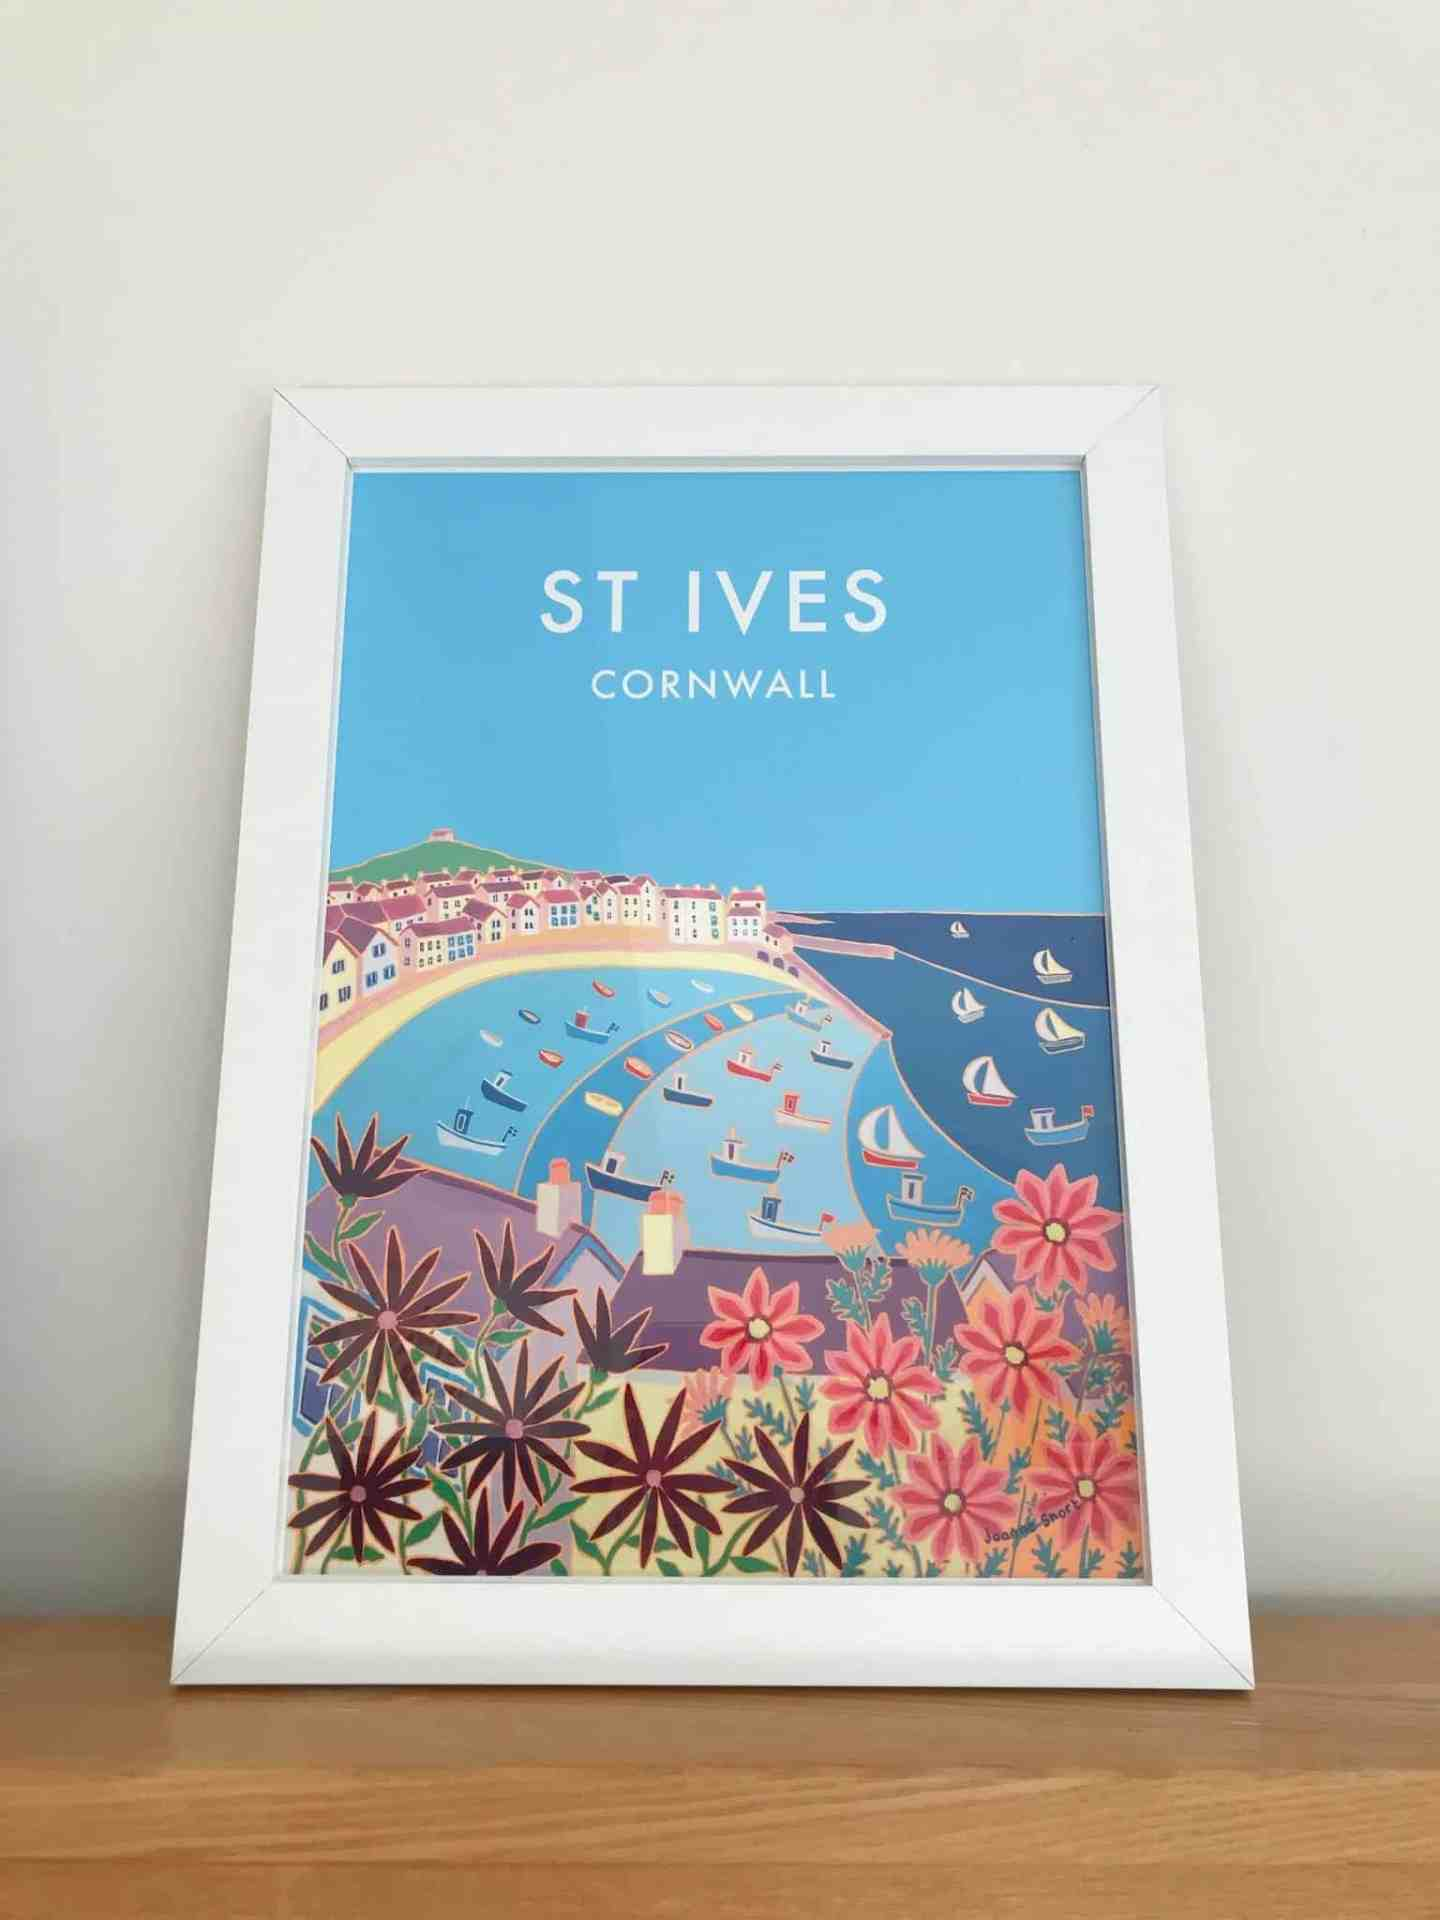 Vintage Style Seaside Travel Poster by Joanne Short of St Ives Harbour gives happy memories of Cornwall